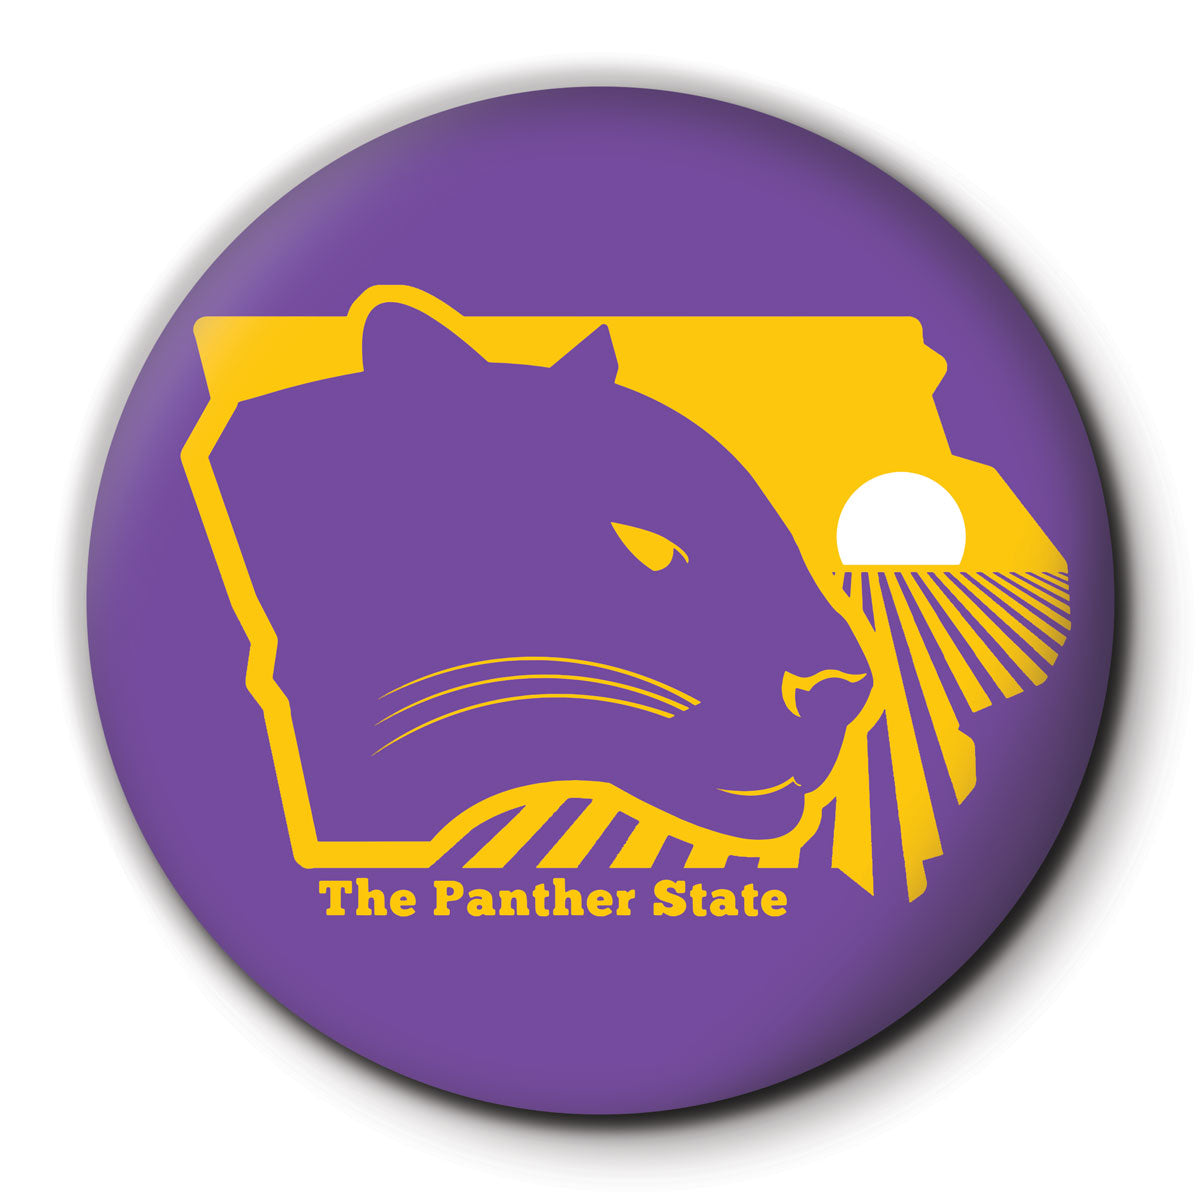 The Panther State Round Coaster